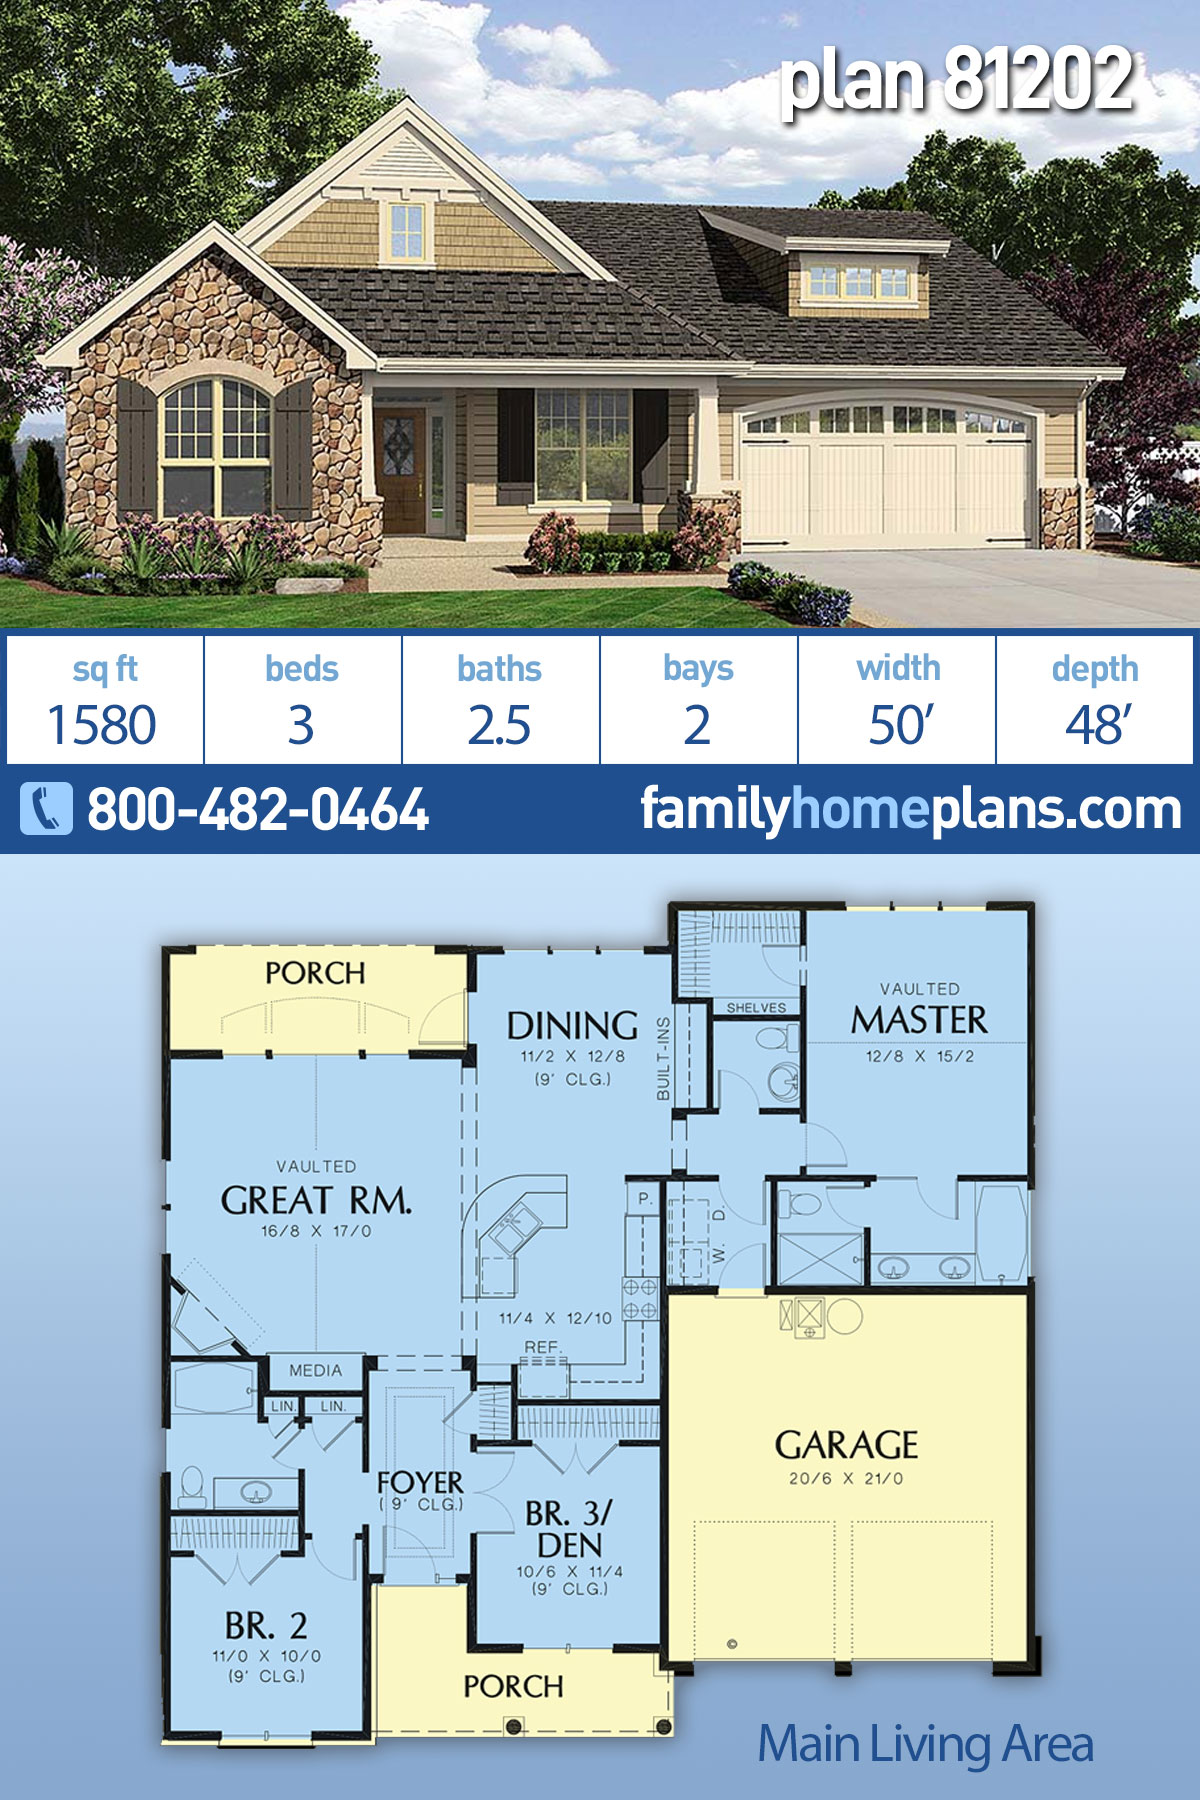 Cottage, Craftsman, French Country, Traditional House Plan 81202 with 3 Beds, 3 Baths, 2 Car Garage